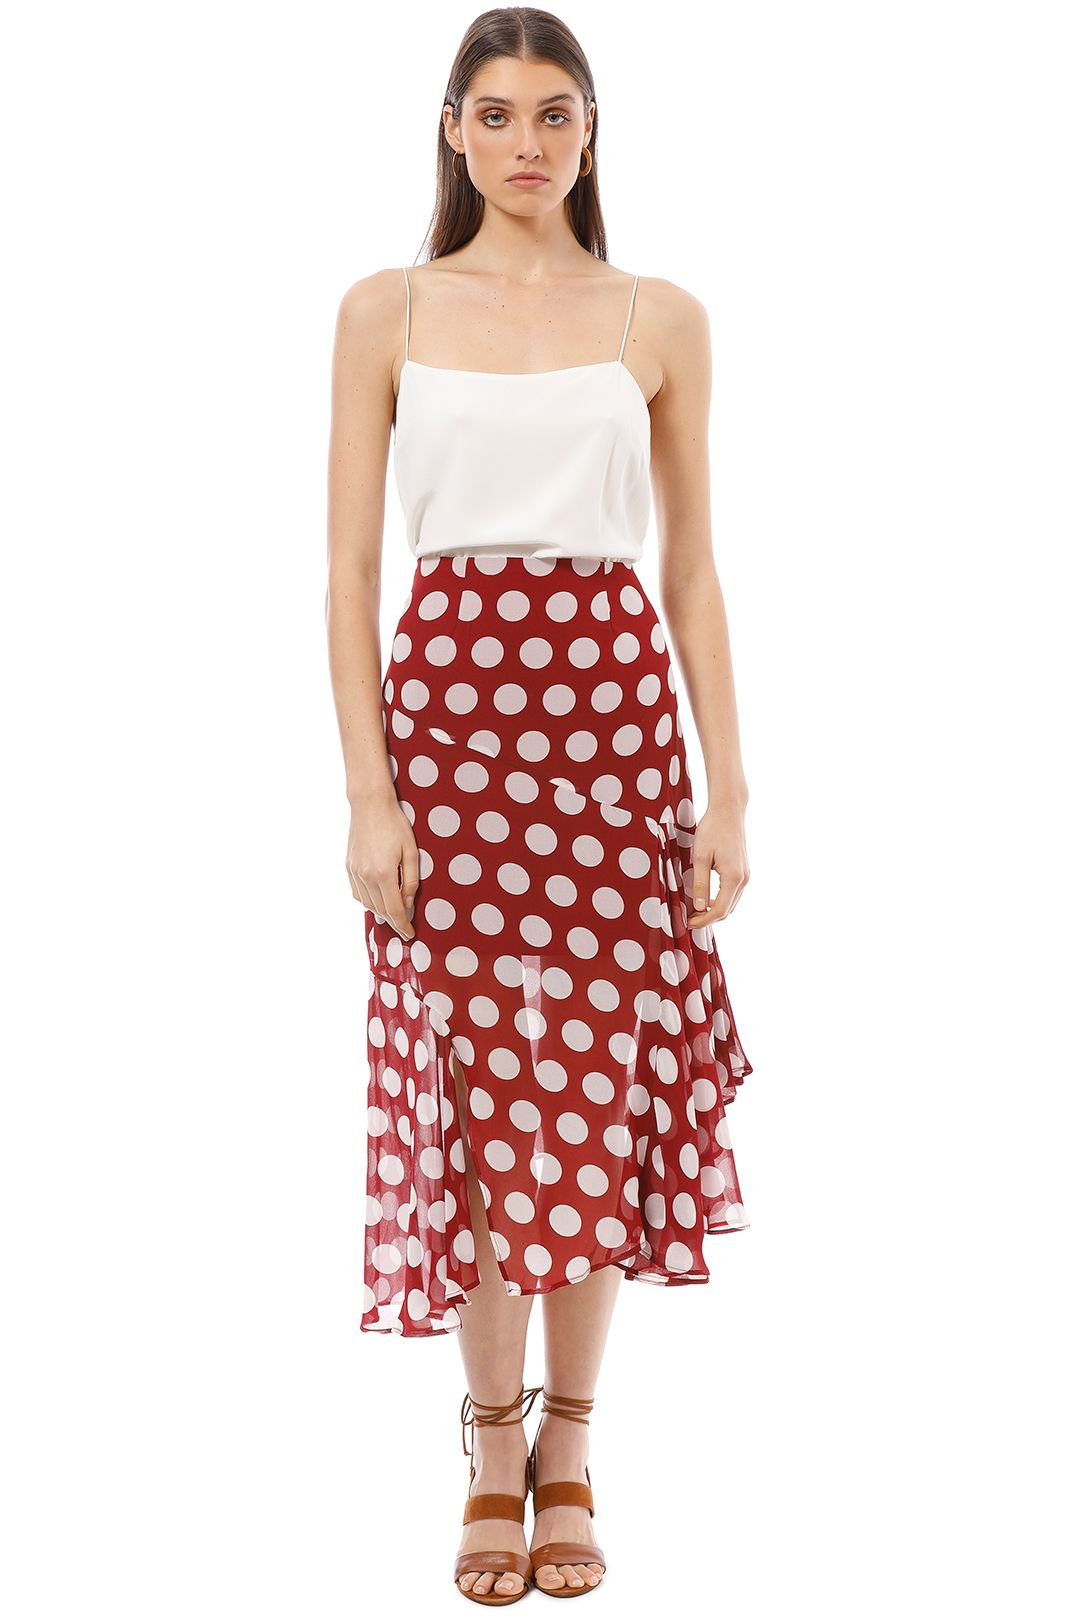 CMEO Collective - Unending Skirt - Red - Front